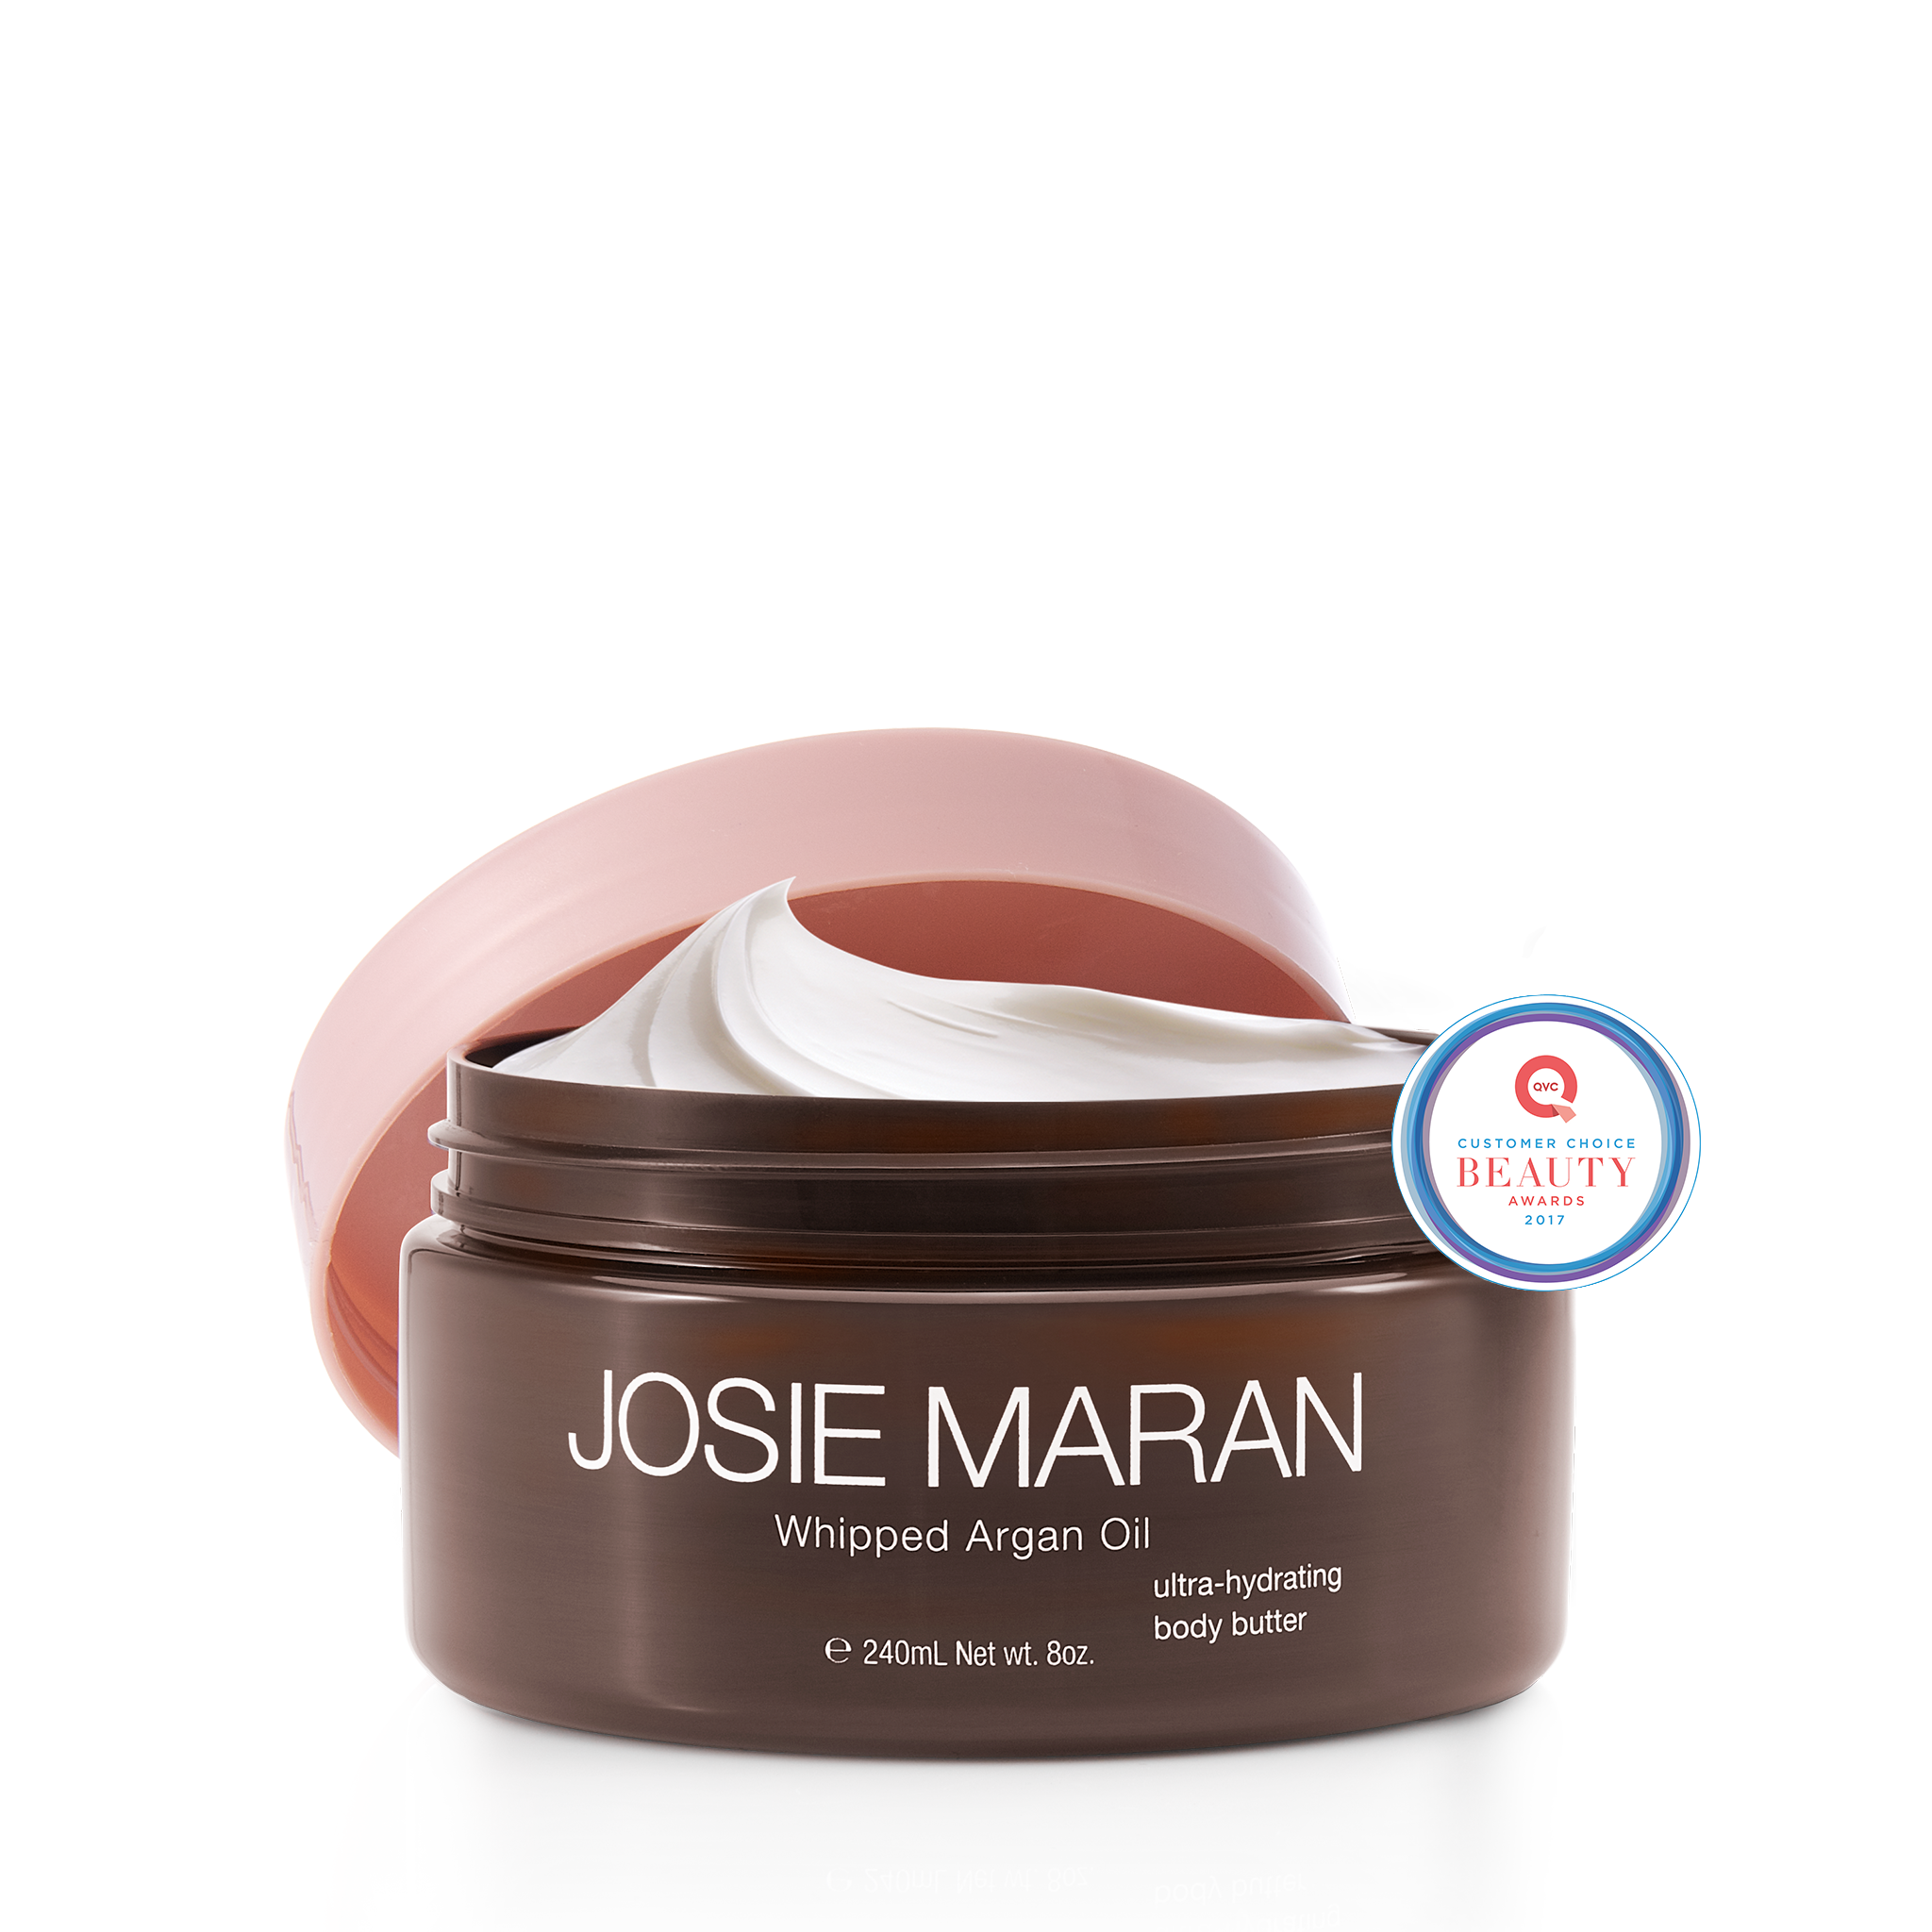 Josie Maran Whipped Argan Oil Body Butter Sweet Apple Cider